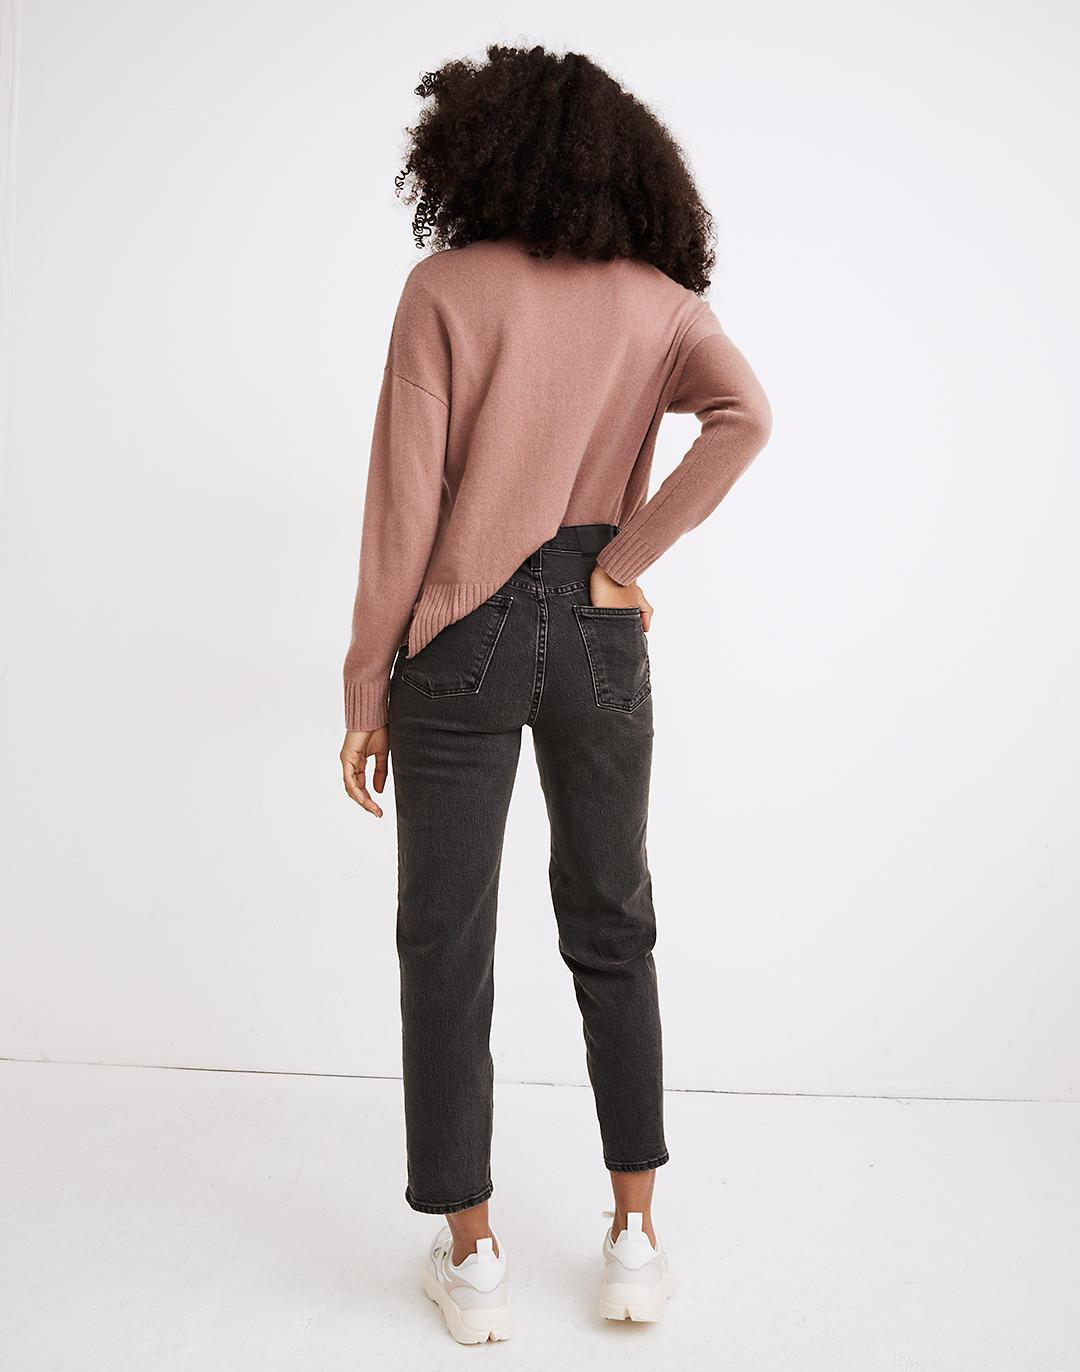 The Tall Perfect Vintage Straight Crop Jean in Lunar Wash